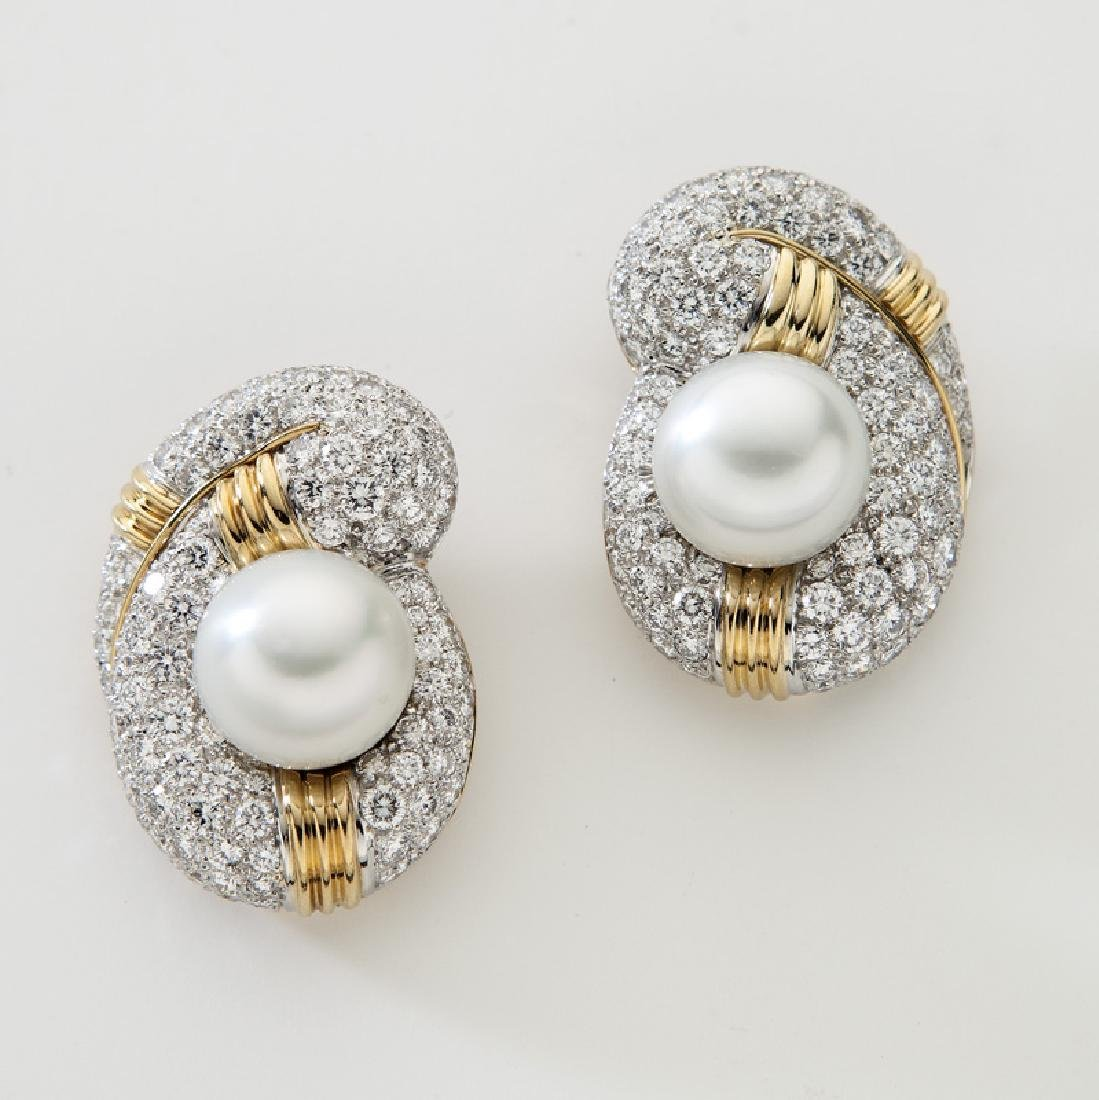 Pair 18K, plat., diamond and Akoya pearl earrings